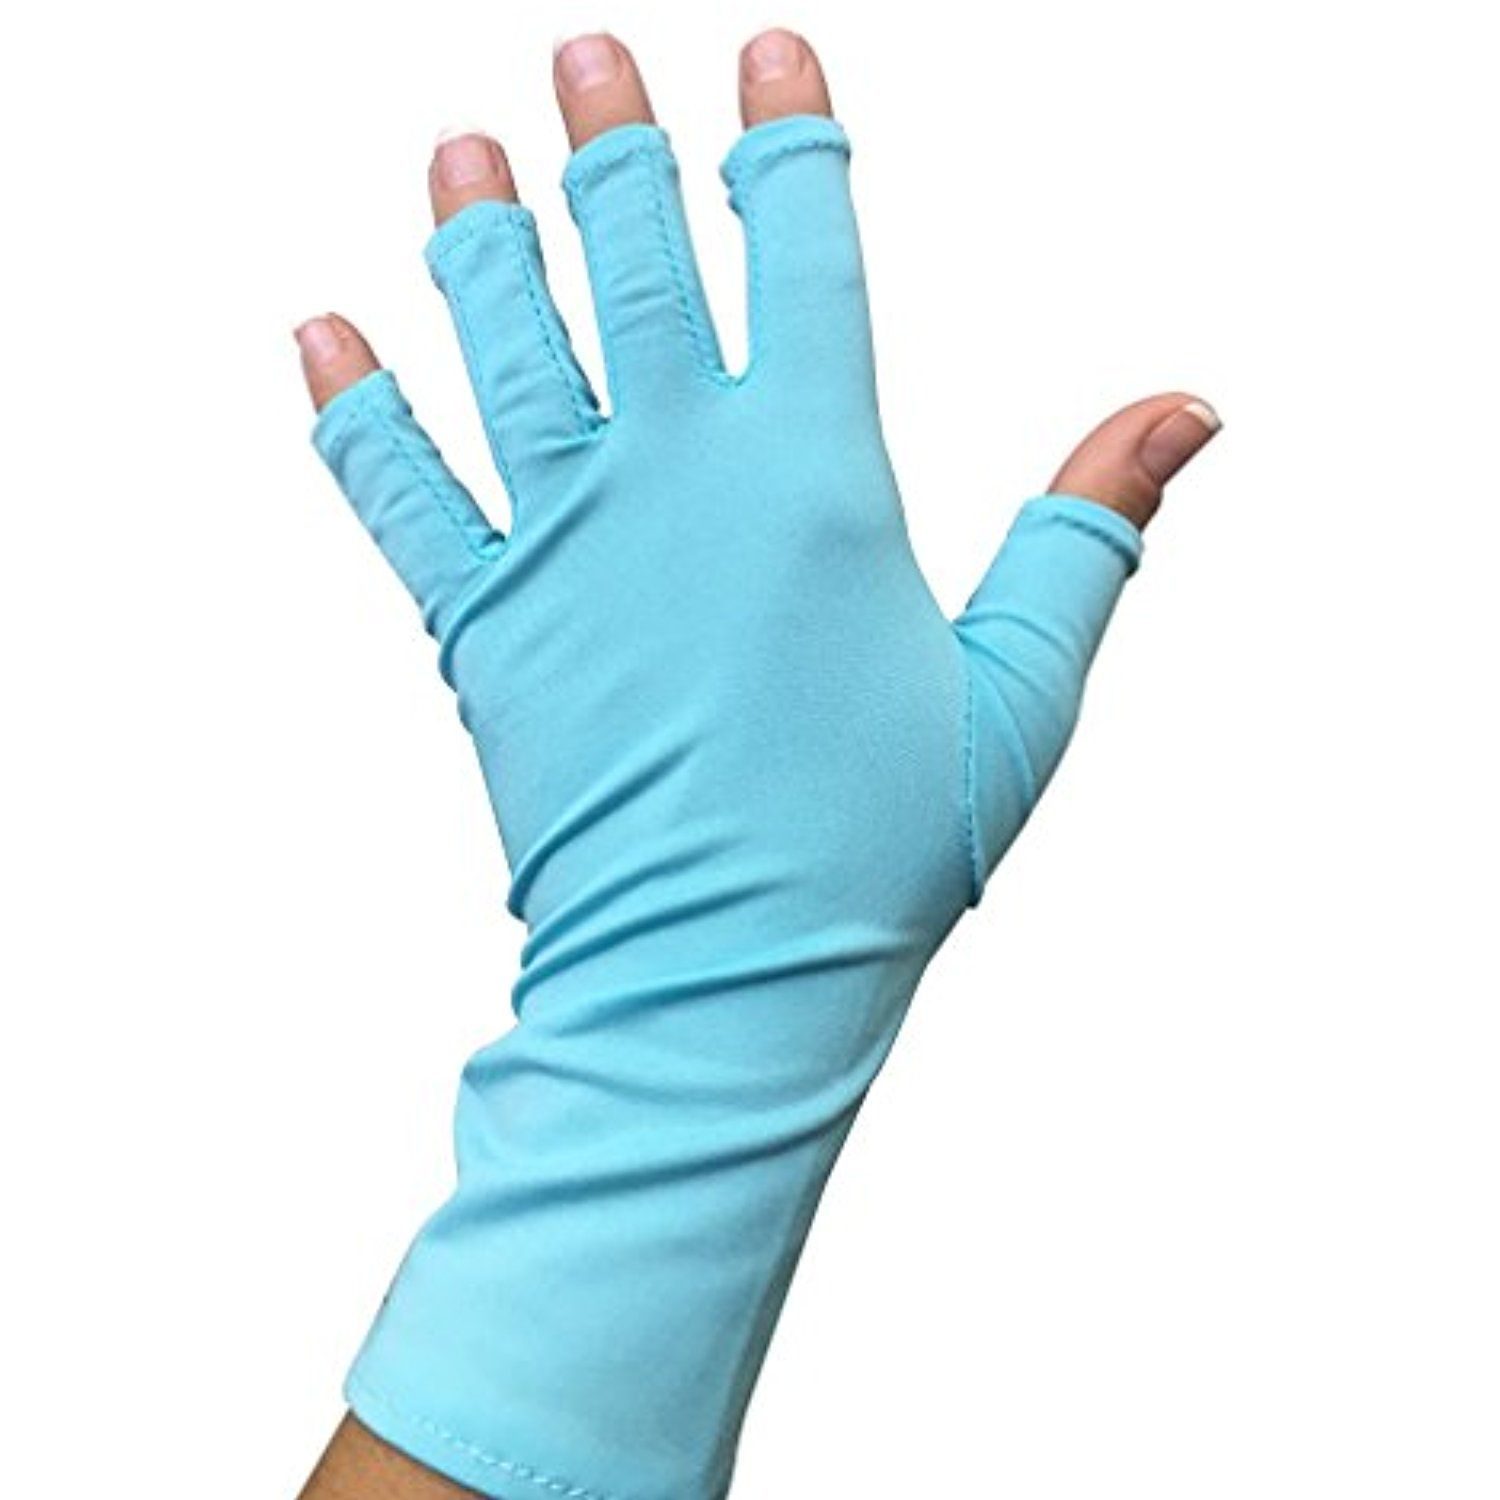 UV Gloves, Fingerless Protection for Nails Gel Manicure, Ultra ...